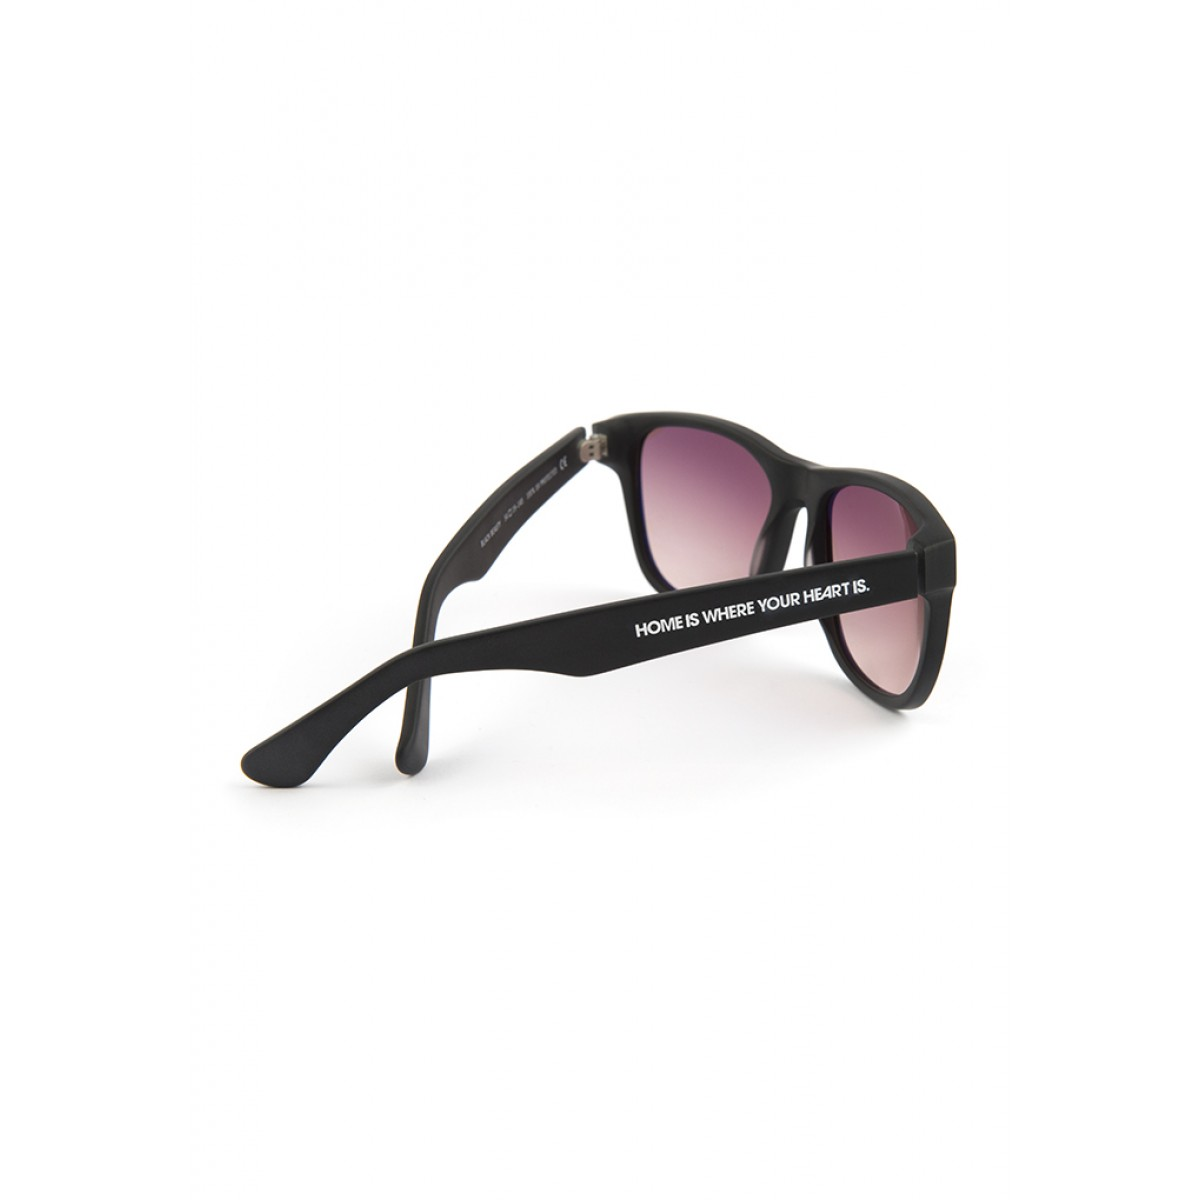 """HOME IS WHERE YOUR HEART IS. – Acetat Sonnenbrille """"BLACK BEAUTY II"""""""